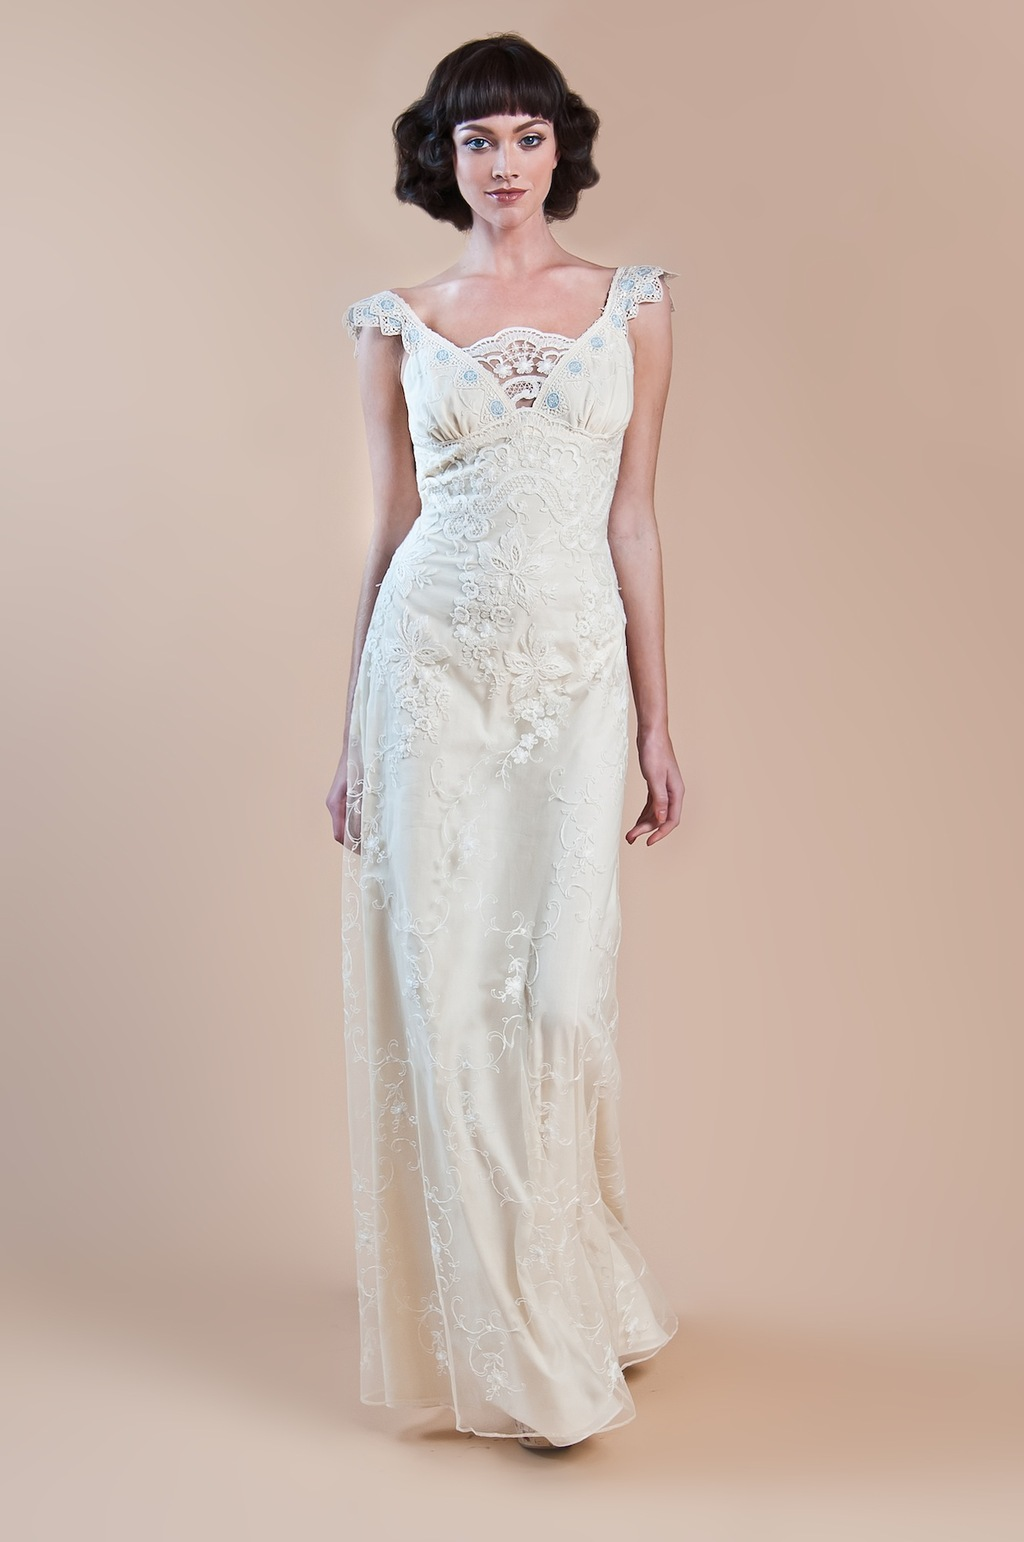 2013 wedding dress claire pettibone windsor rose collection waverly2